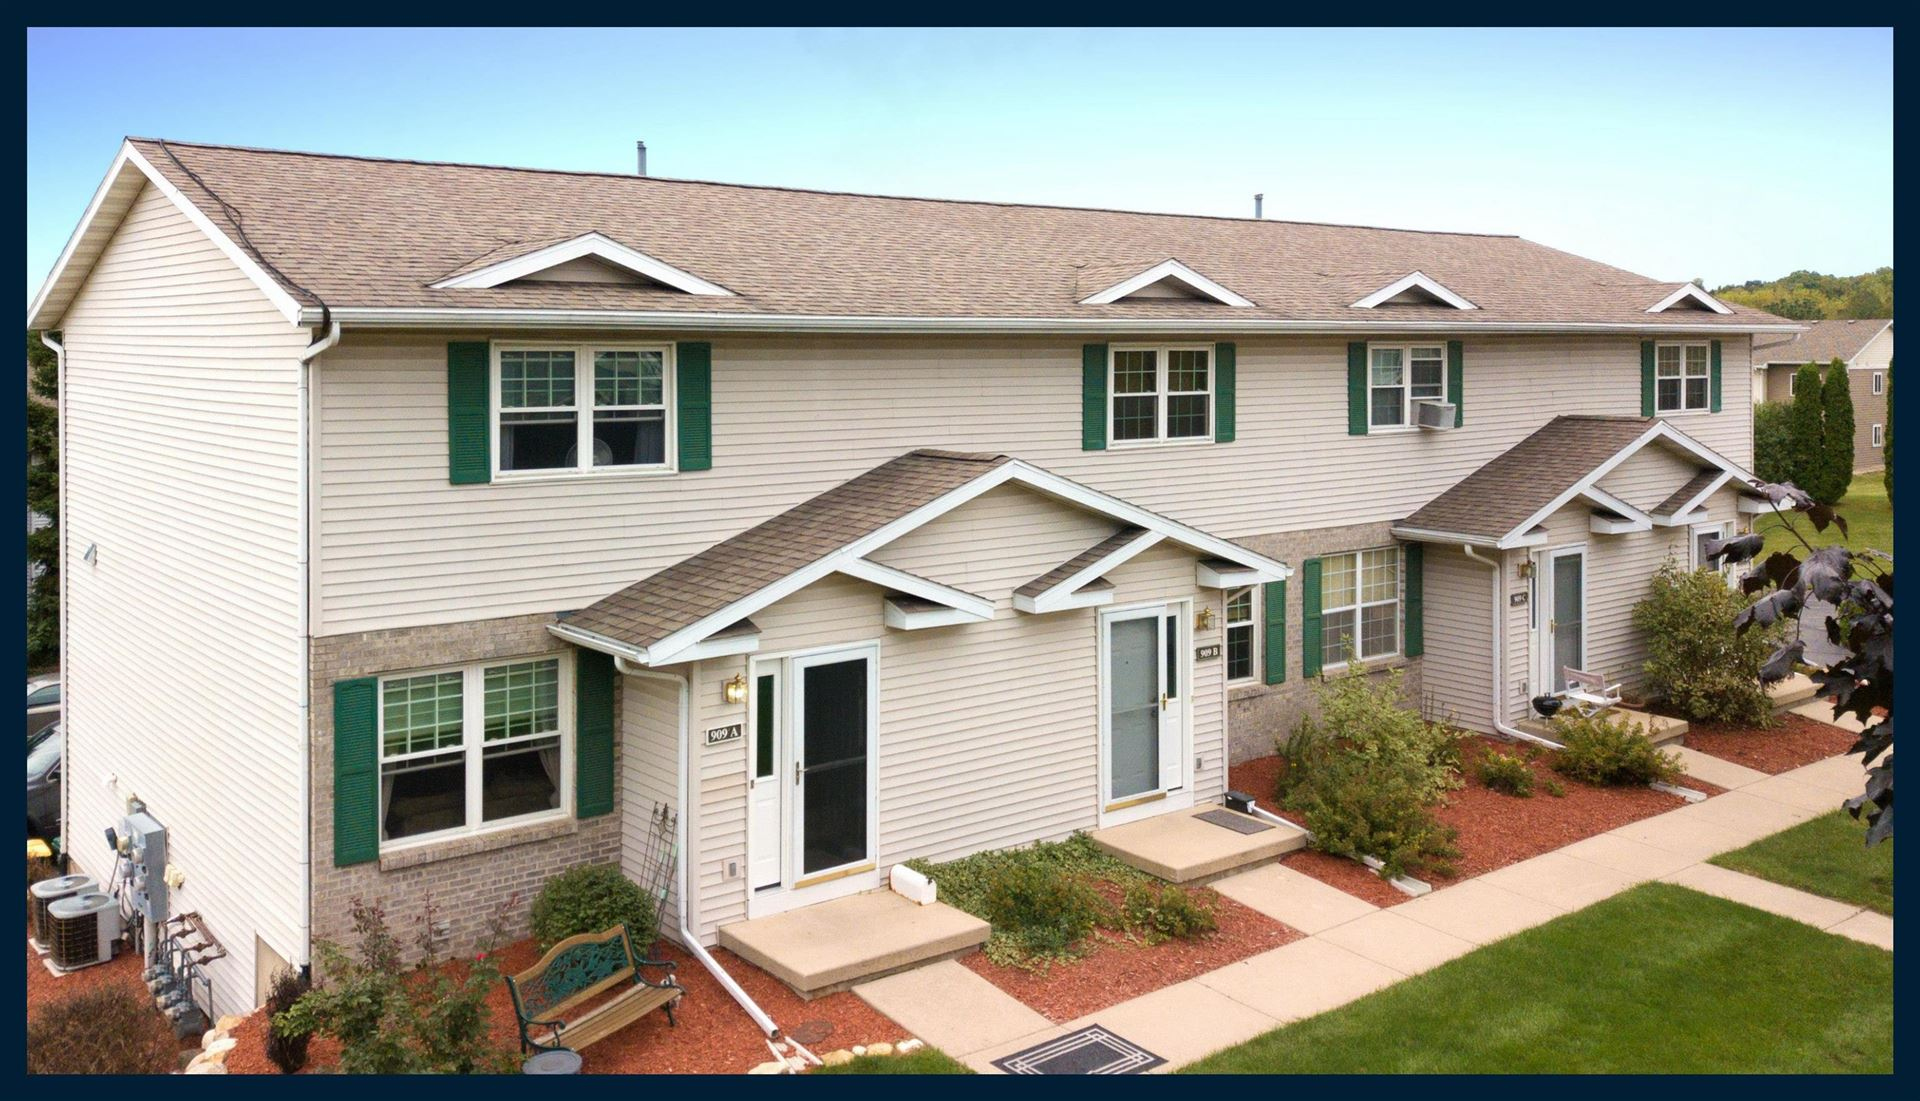 Photo for 909A N Clover Ln, Cottage Grove, WI 53527-9454 (MLS # 1919922)